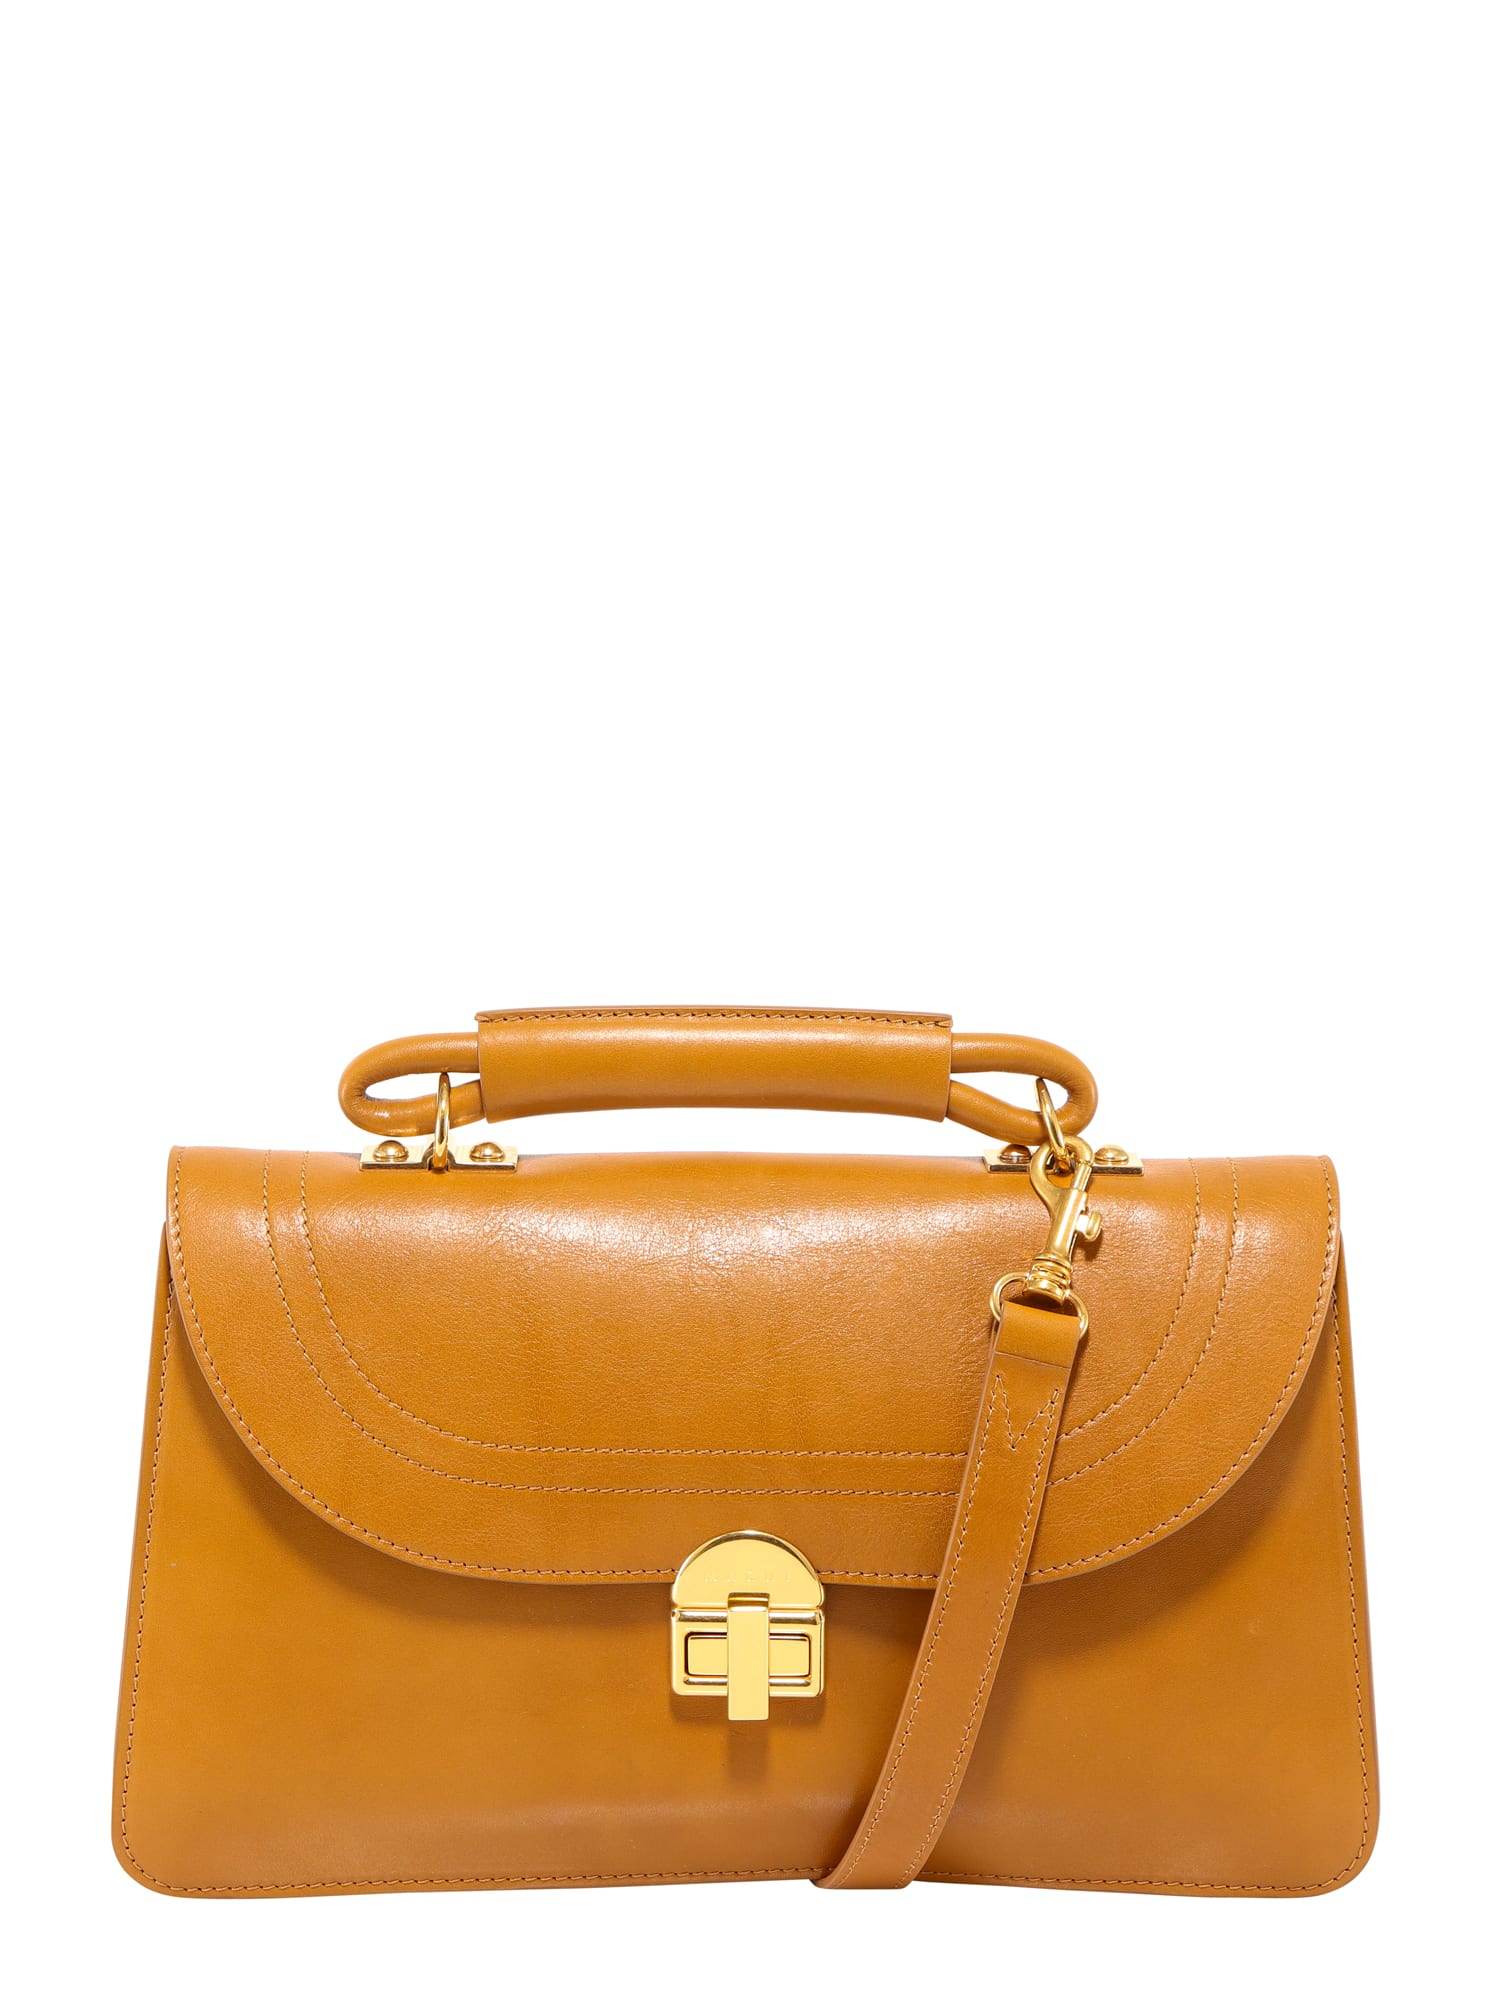 Marni Juliette Crossbody Bag In Brown